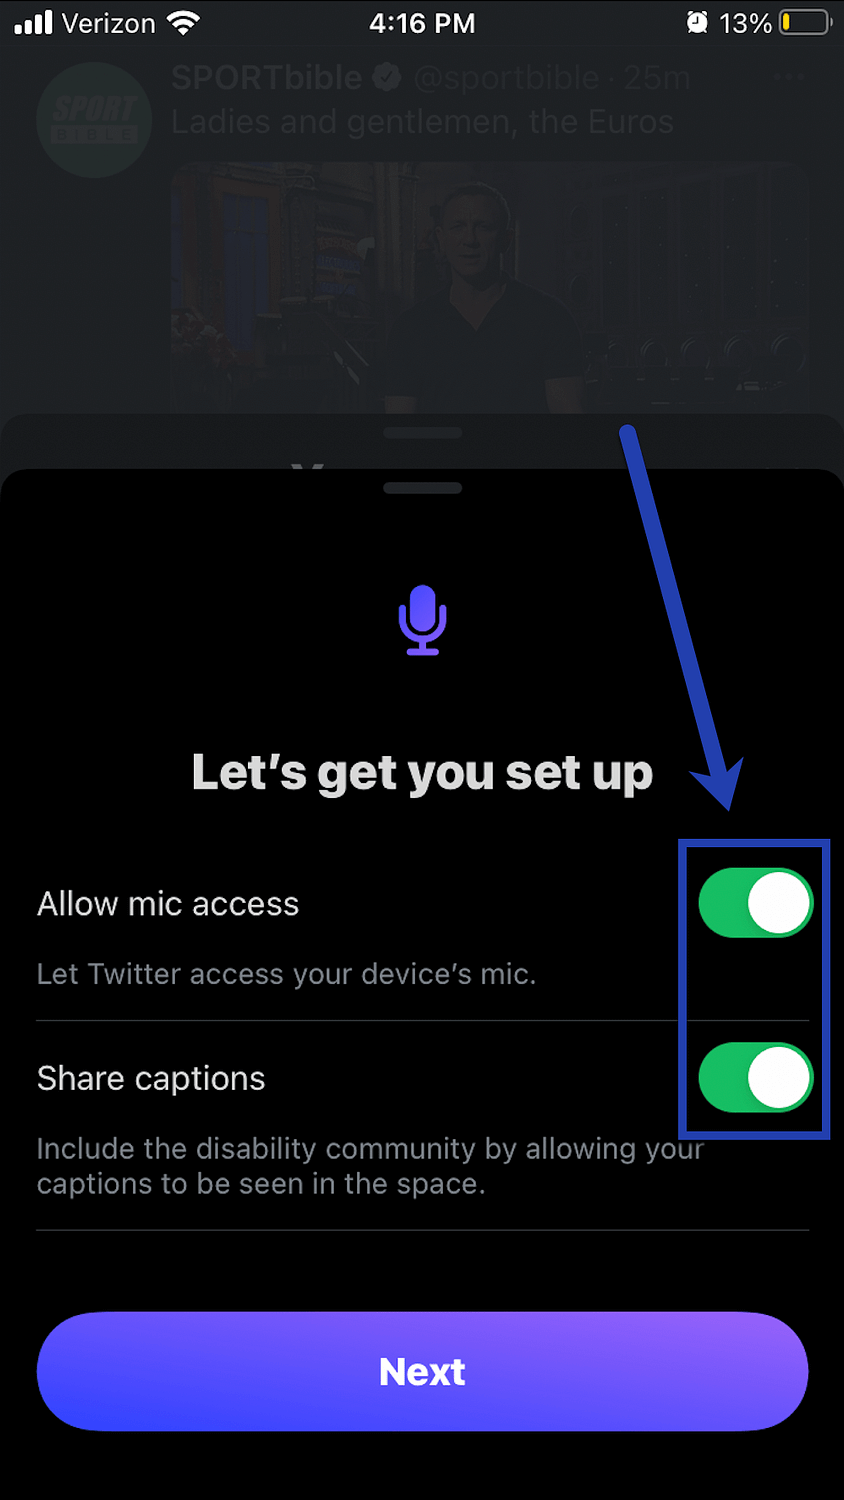 allow mic access on phone.